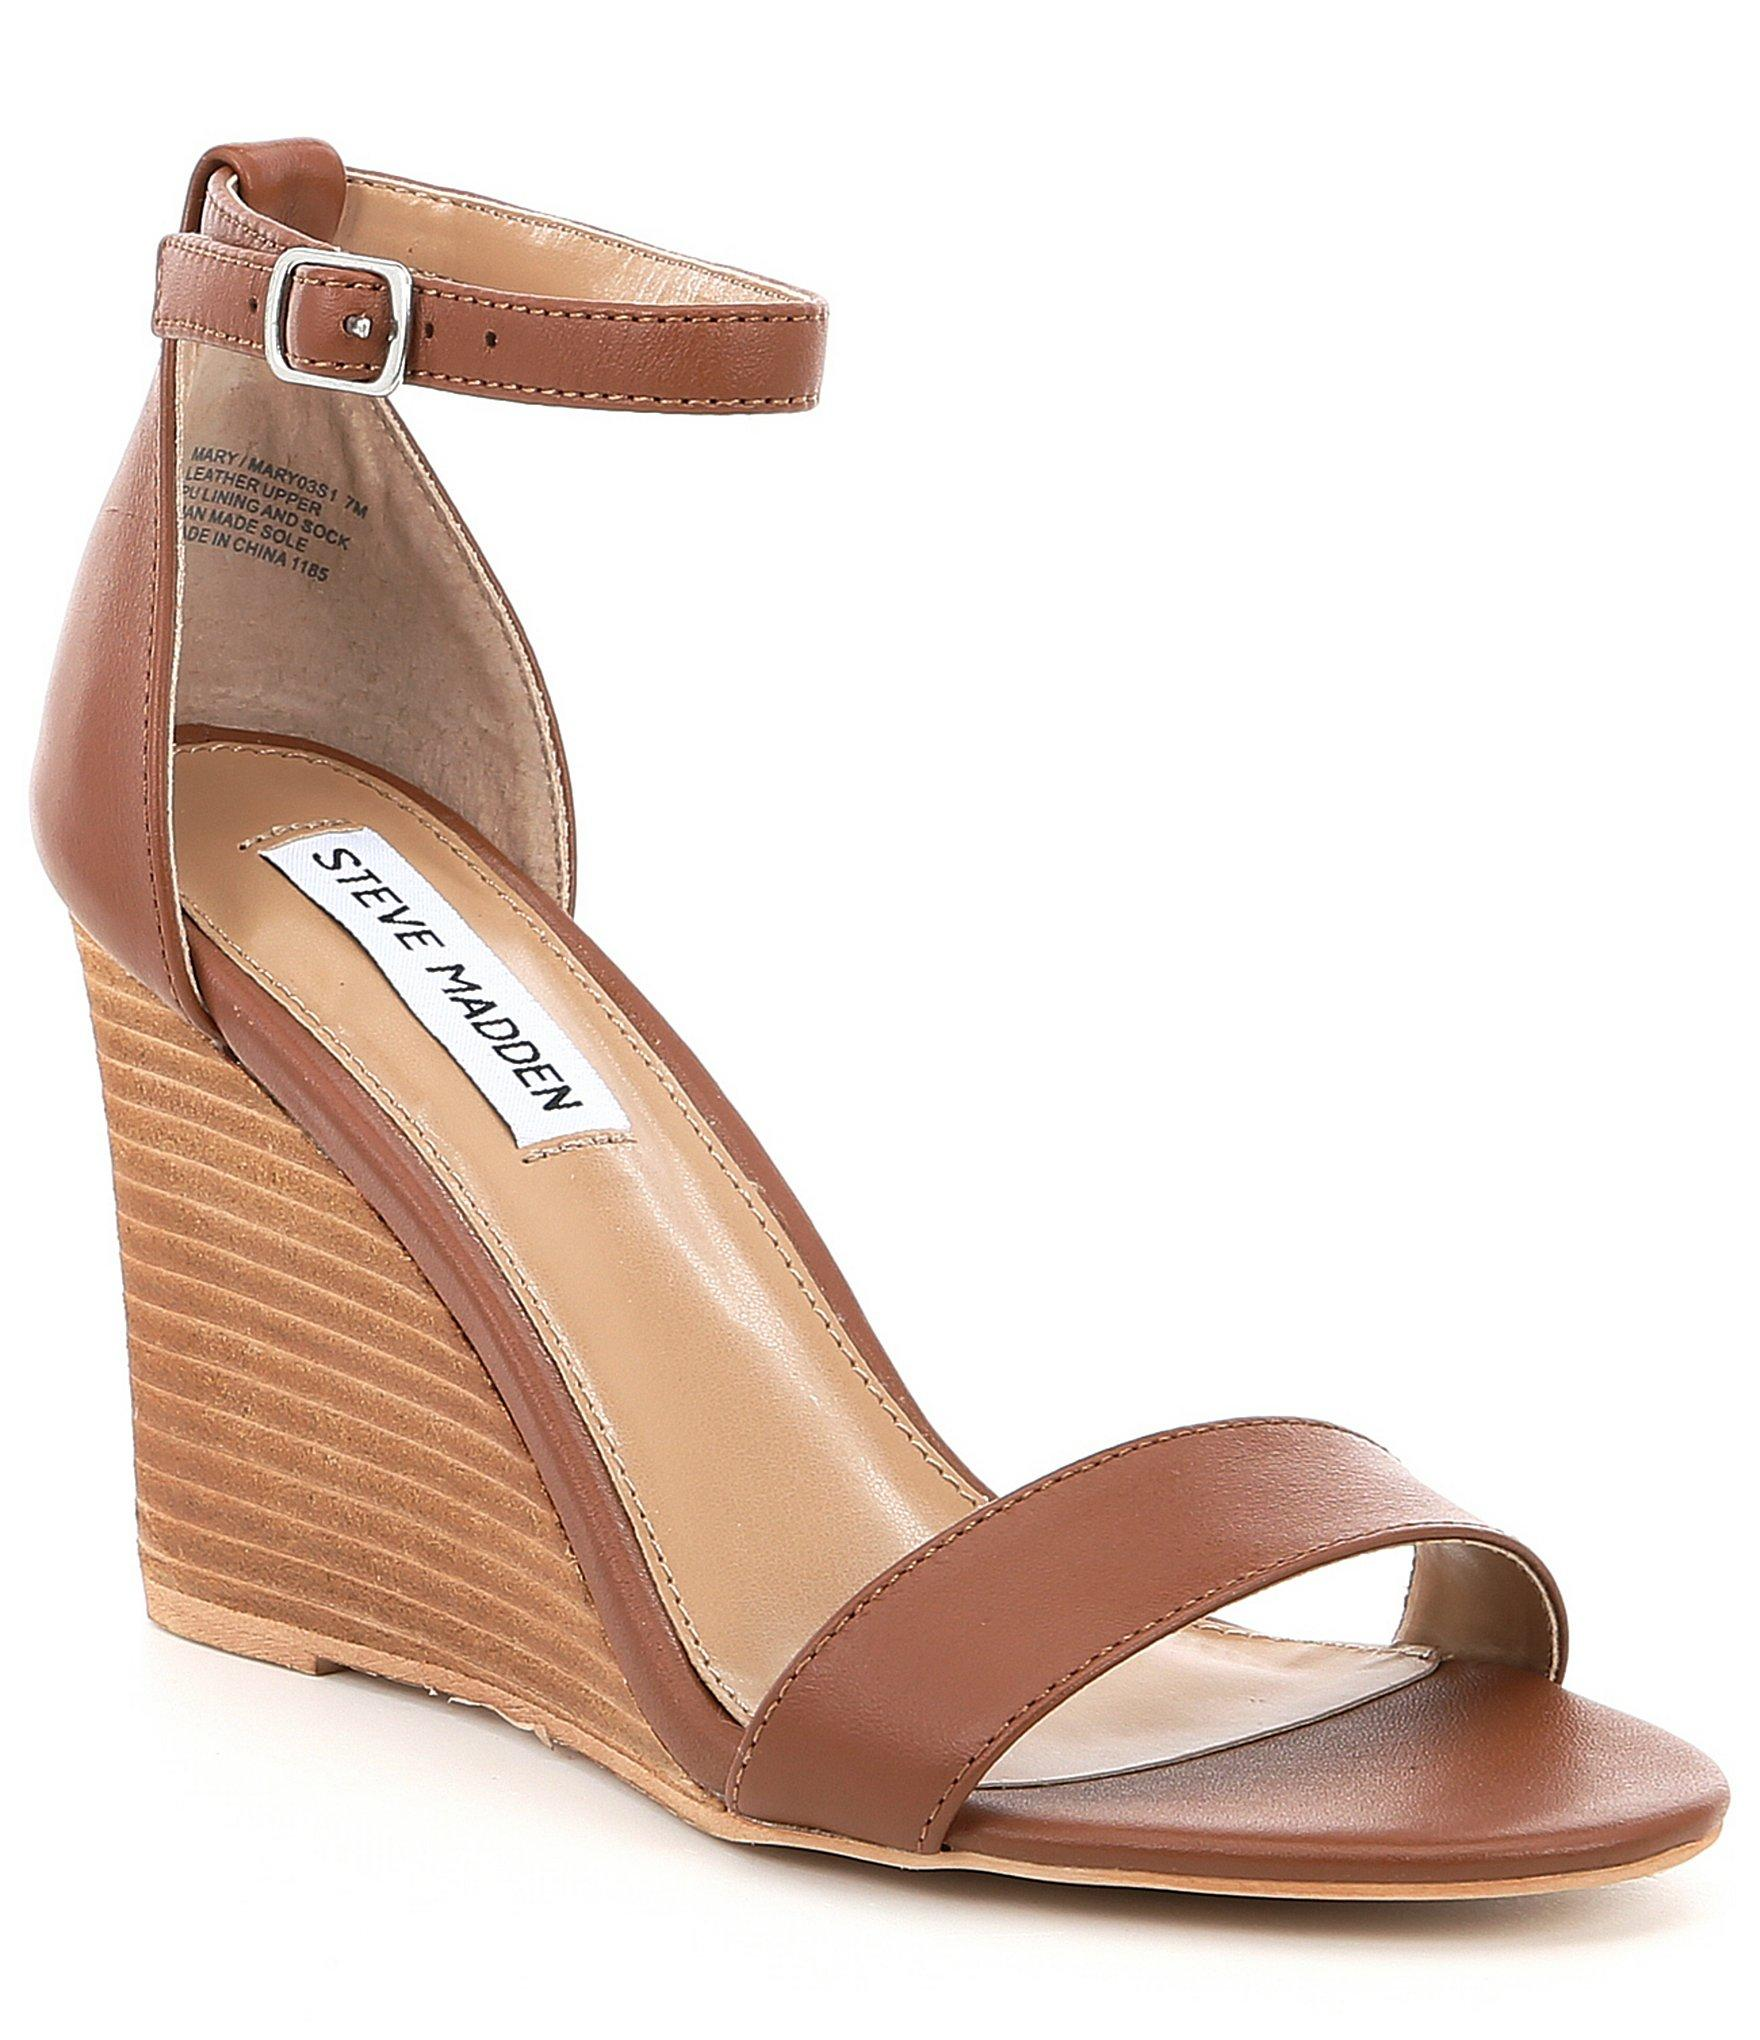 e1d4a02224d8 Steve Madden - Brown Mary Leather Stacked Wedge Sandal - Lyst. View  fullscreen